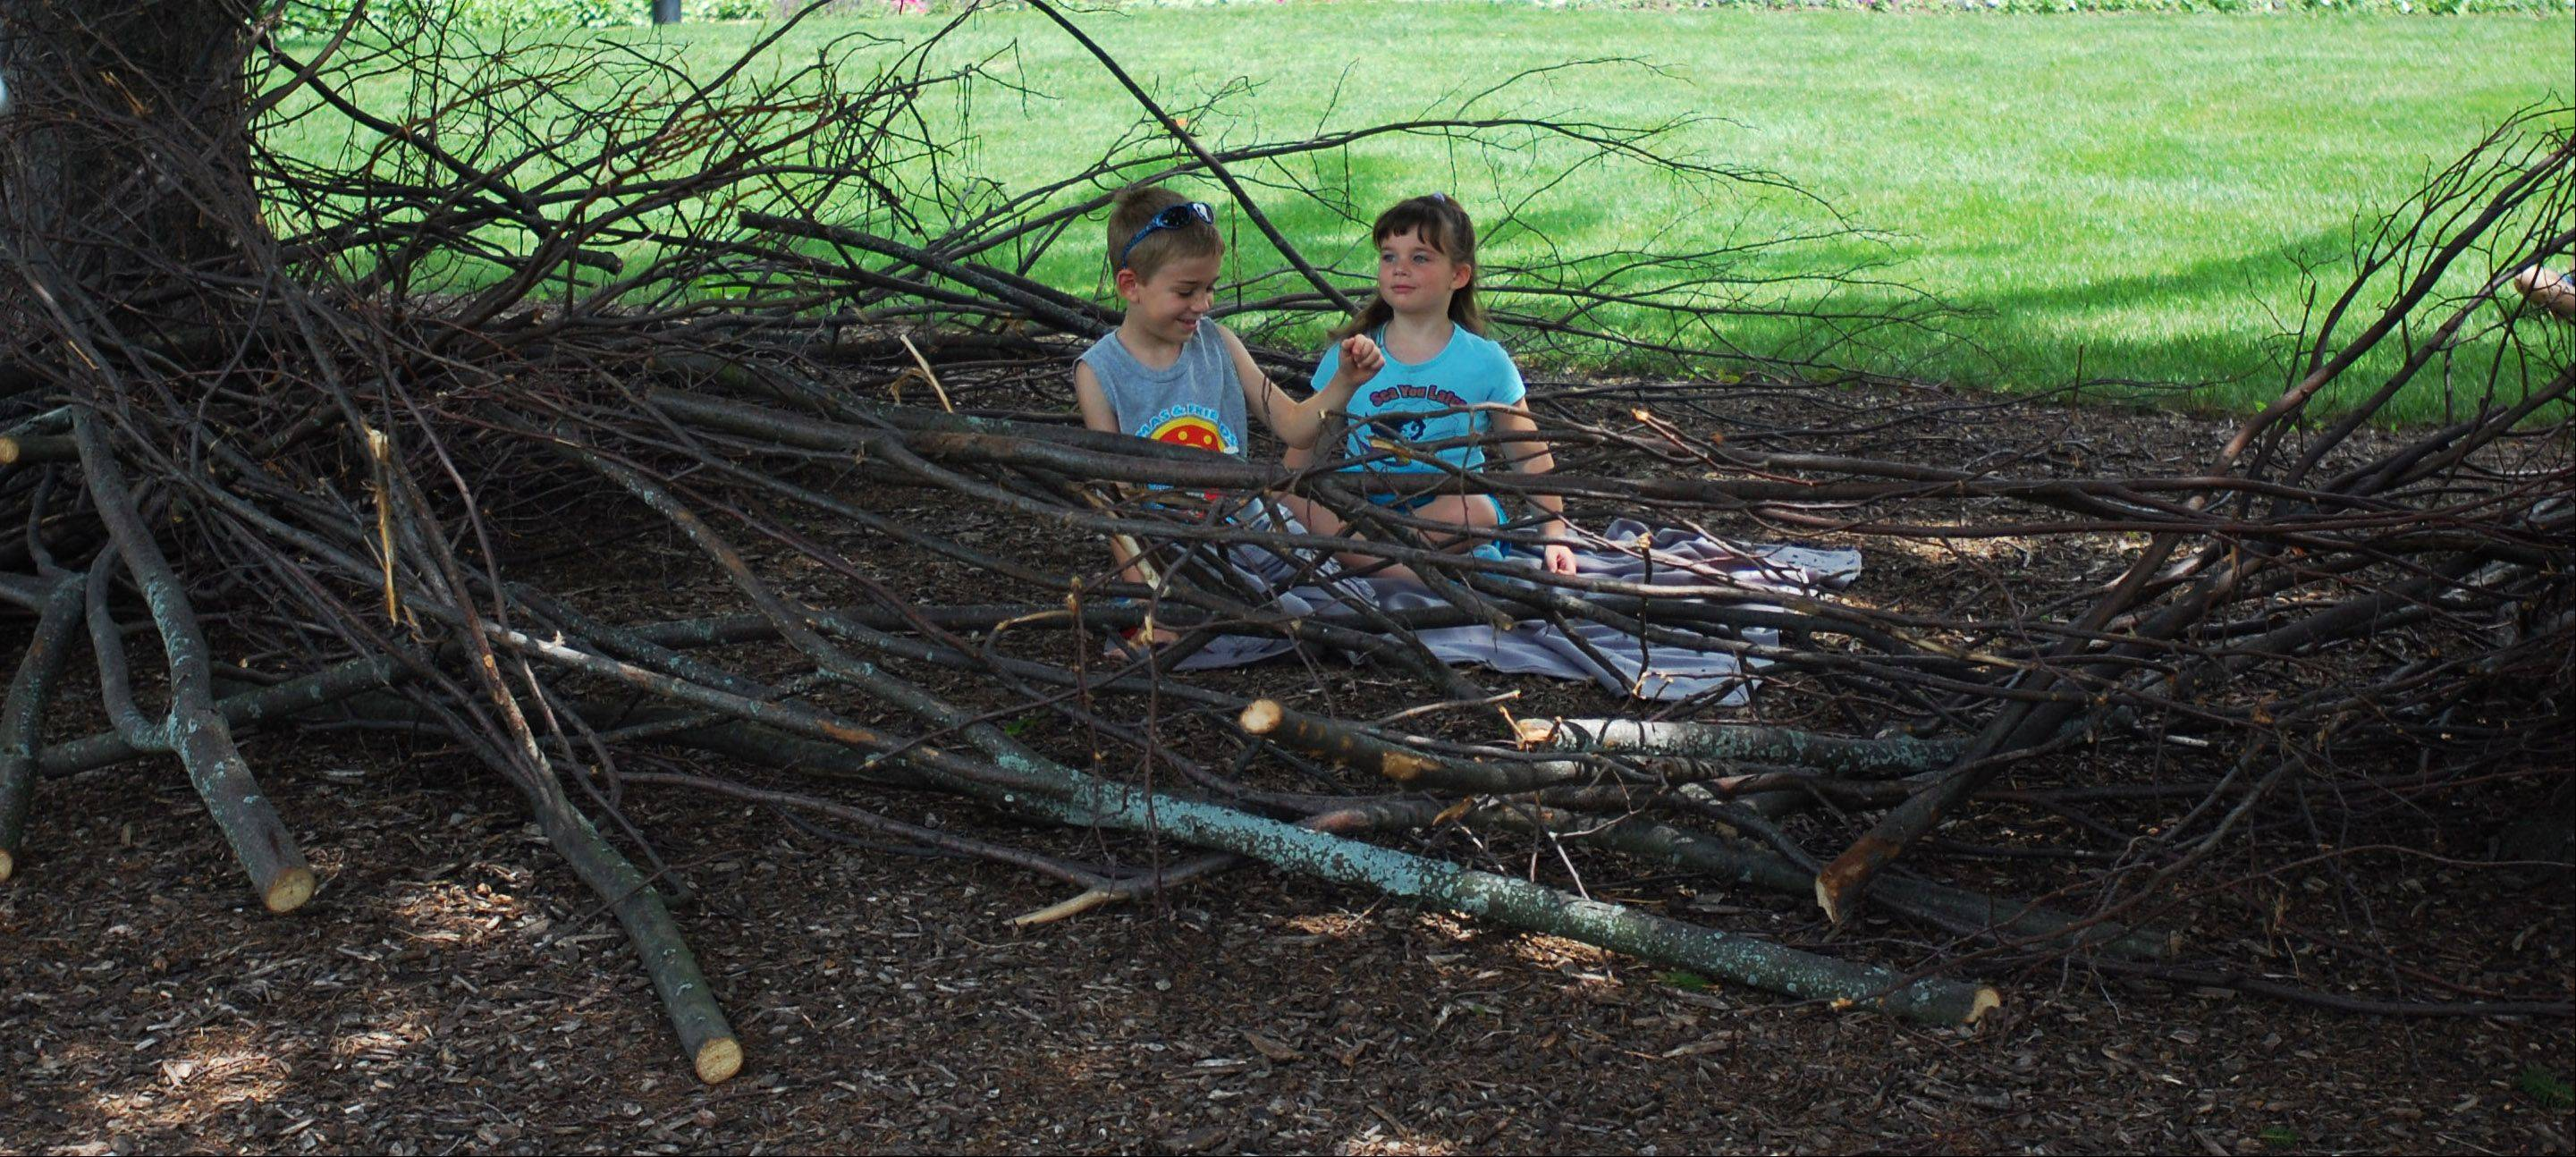 "Dax, 6, and Kate Macklin, 5, of Batavia, sit in an oversized bird nest at the ""Get Wild"" hands-on nature exploration class at Peck Farm Park in Geneva. The event runs every Saturday through August 17 and allows families to explore nature together."